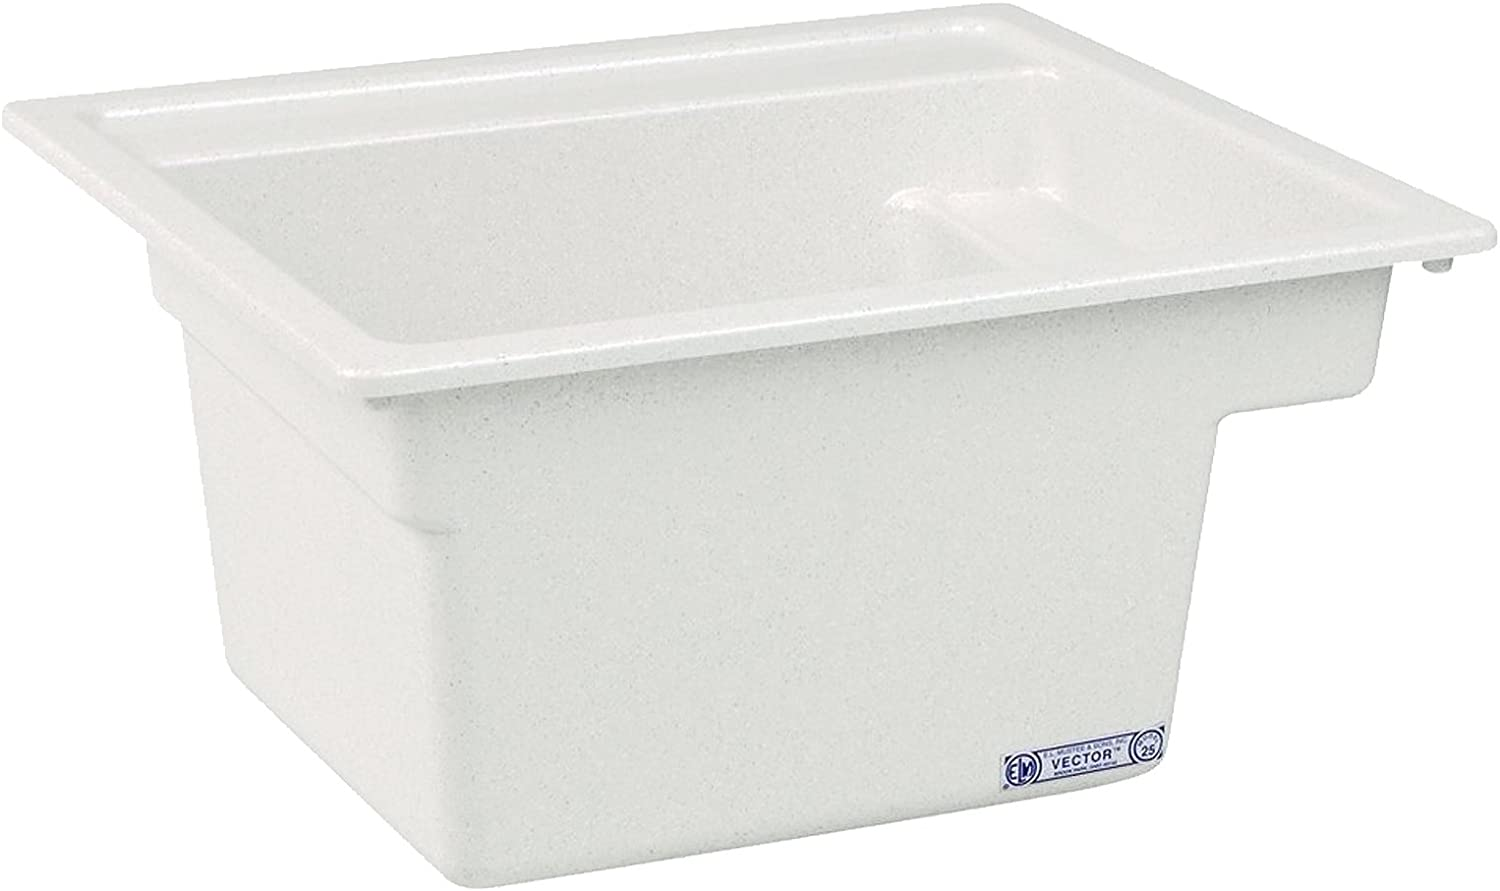 Mustee 25 Vector Multi Task Sink, 22-Inch x 25-Inch, White